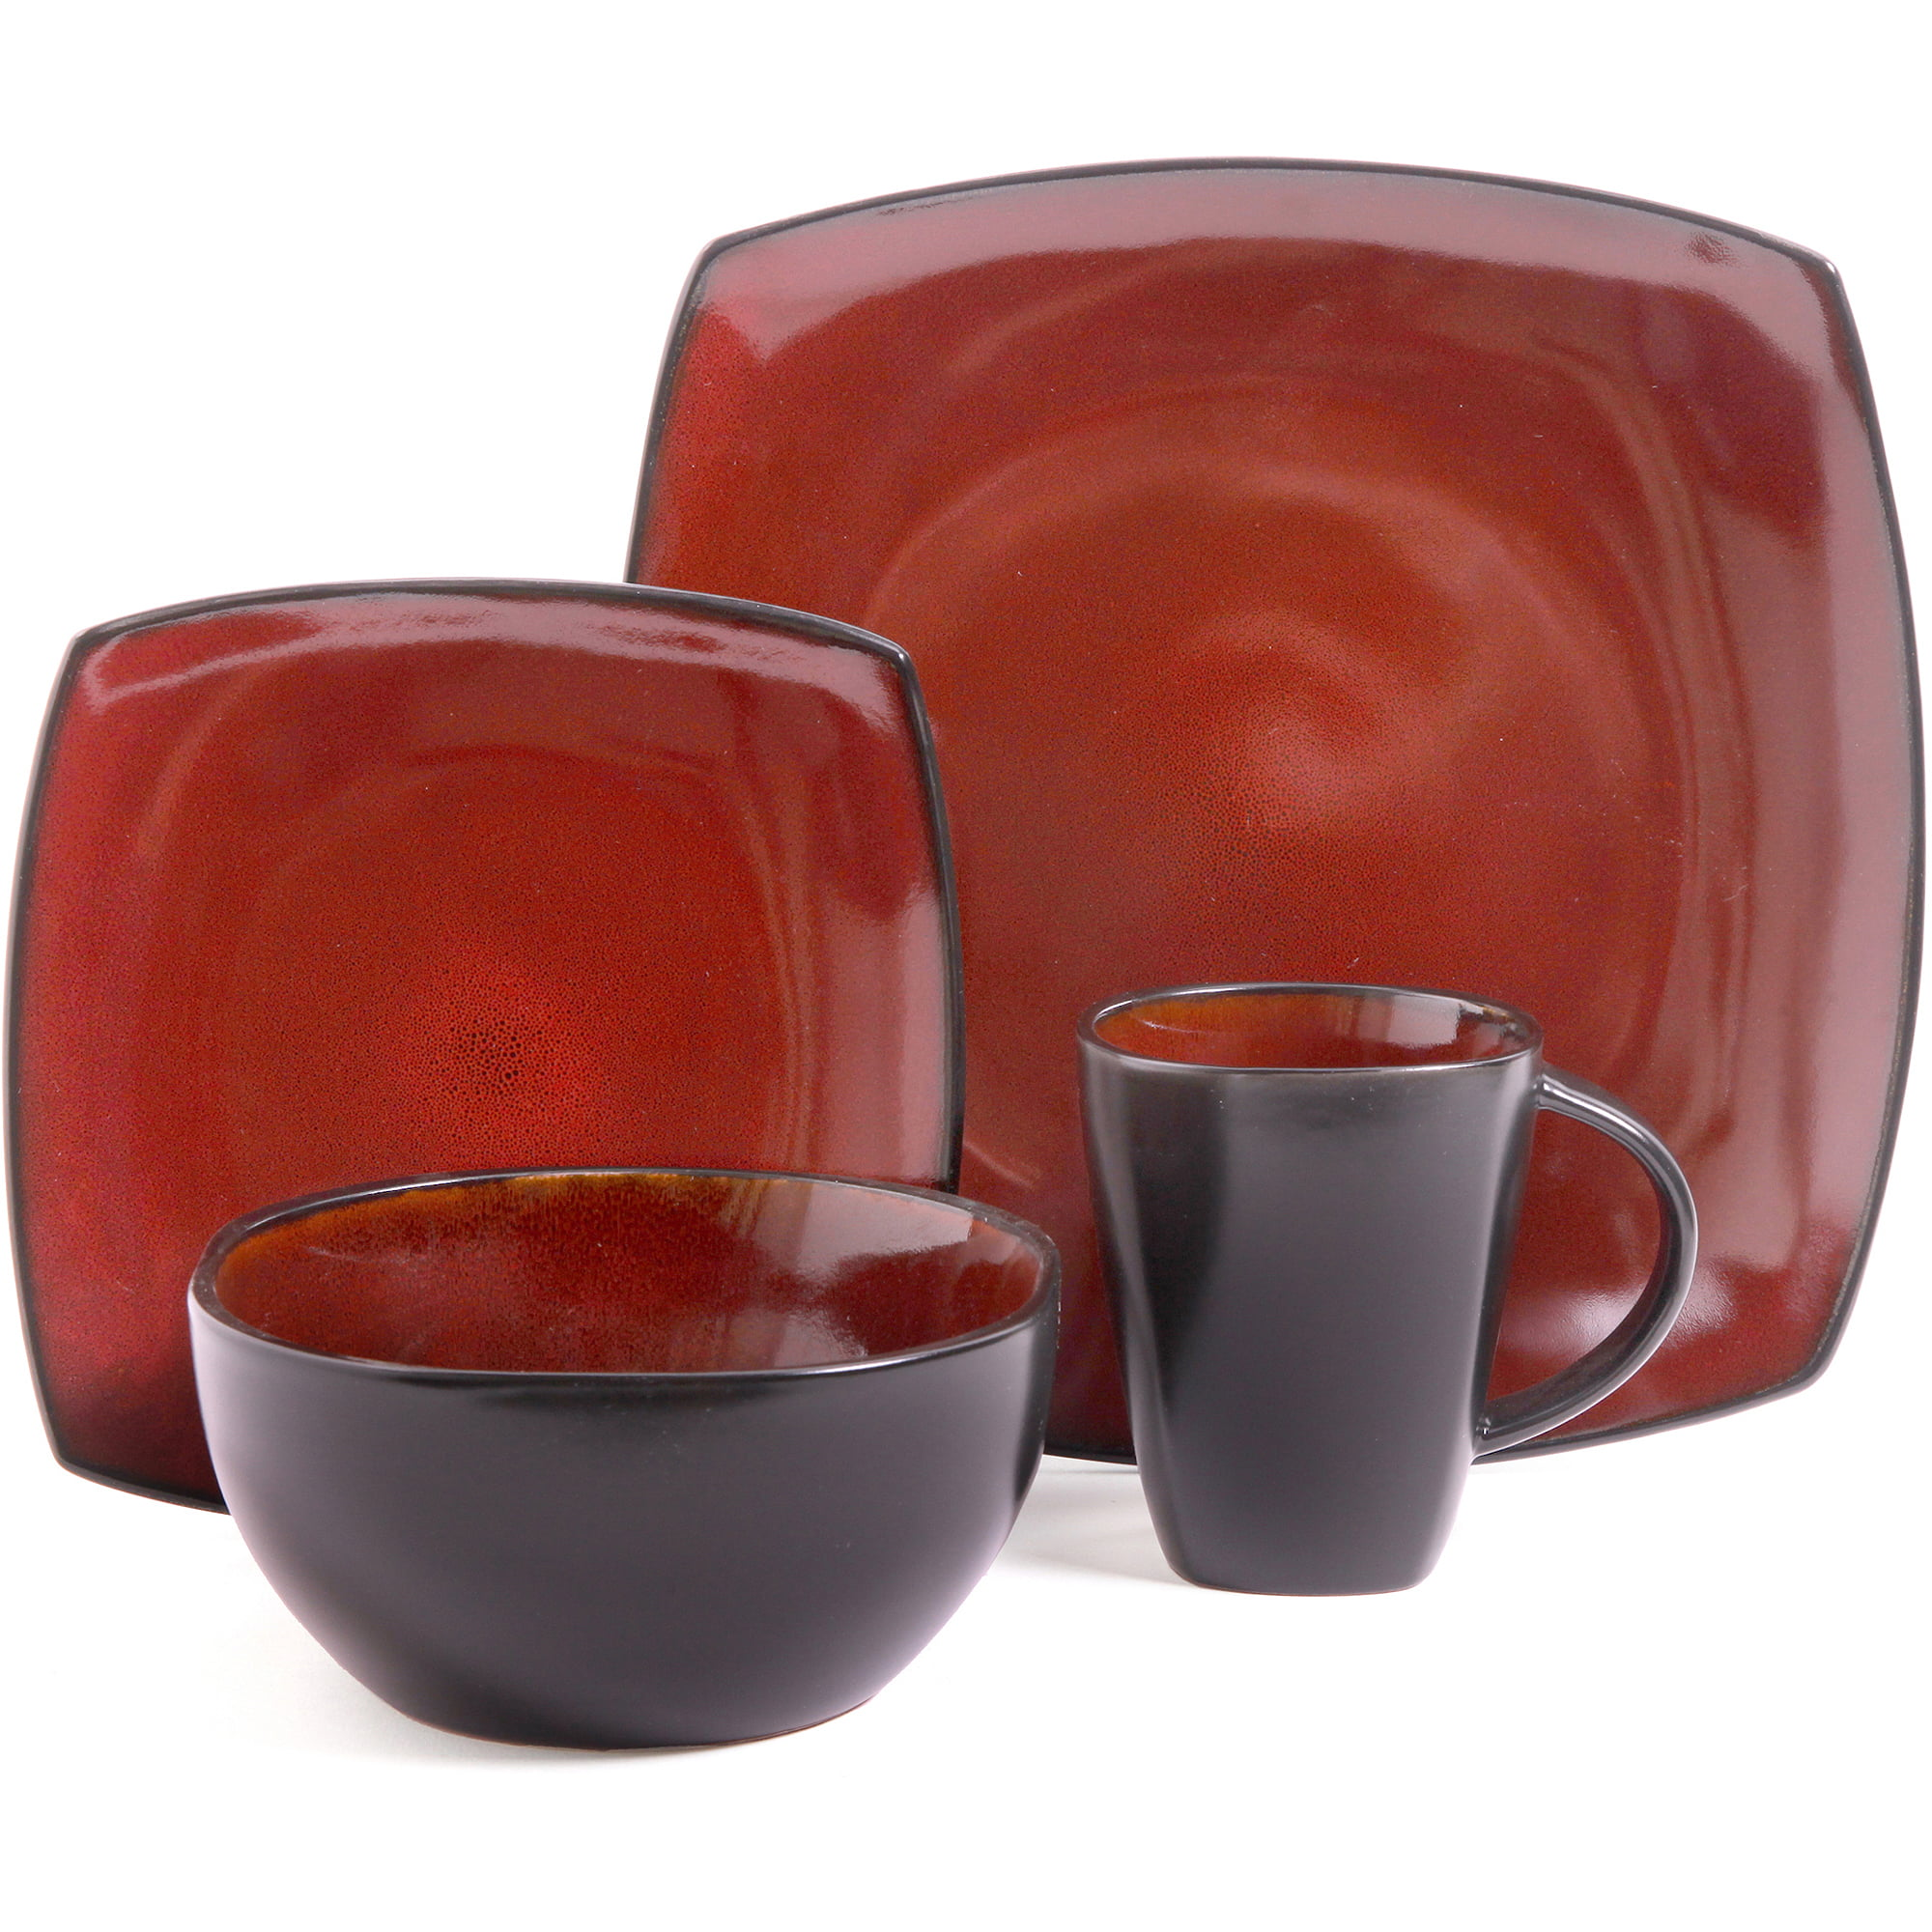 sc 1 st  Walmart & Better Homes u0026 Gardens 16-Piece Dinnerware Set Tuscan Red - Walmart.com